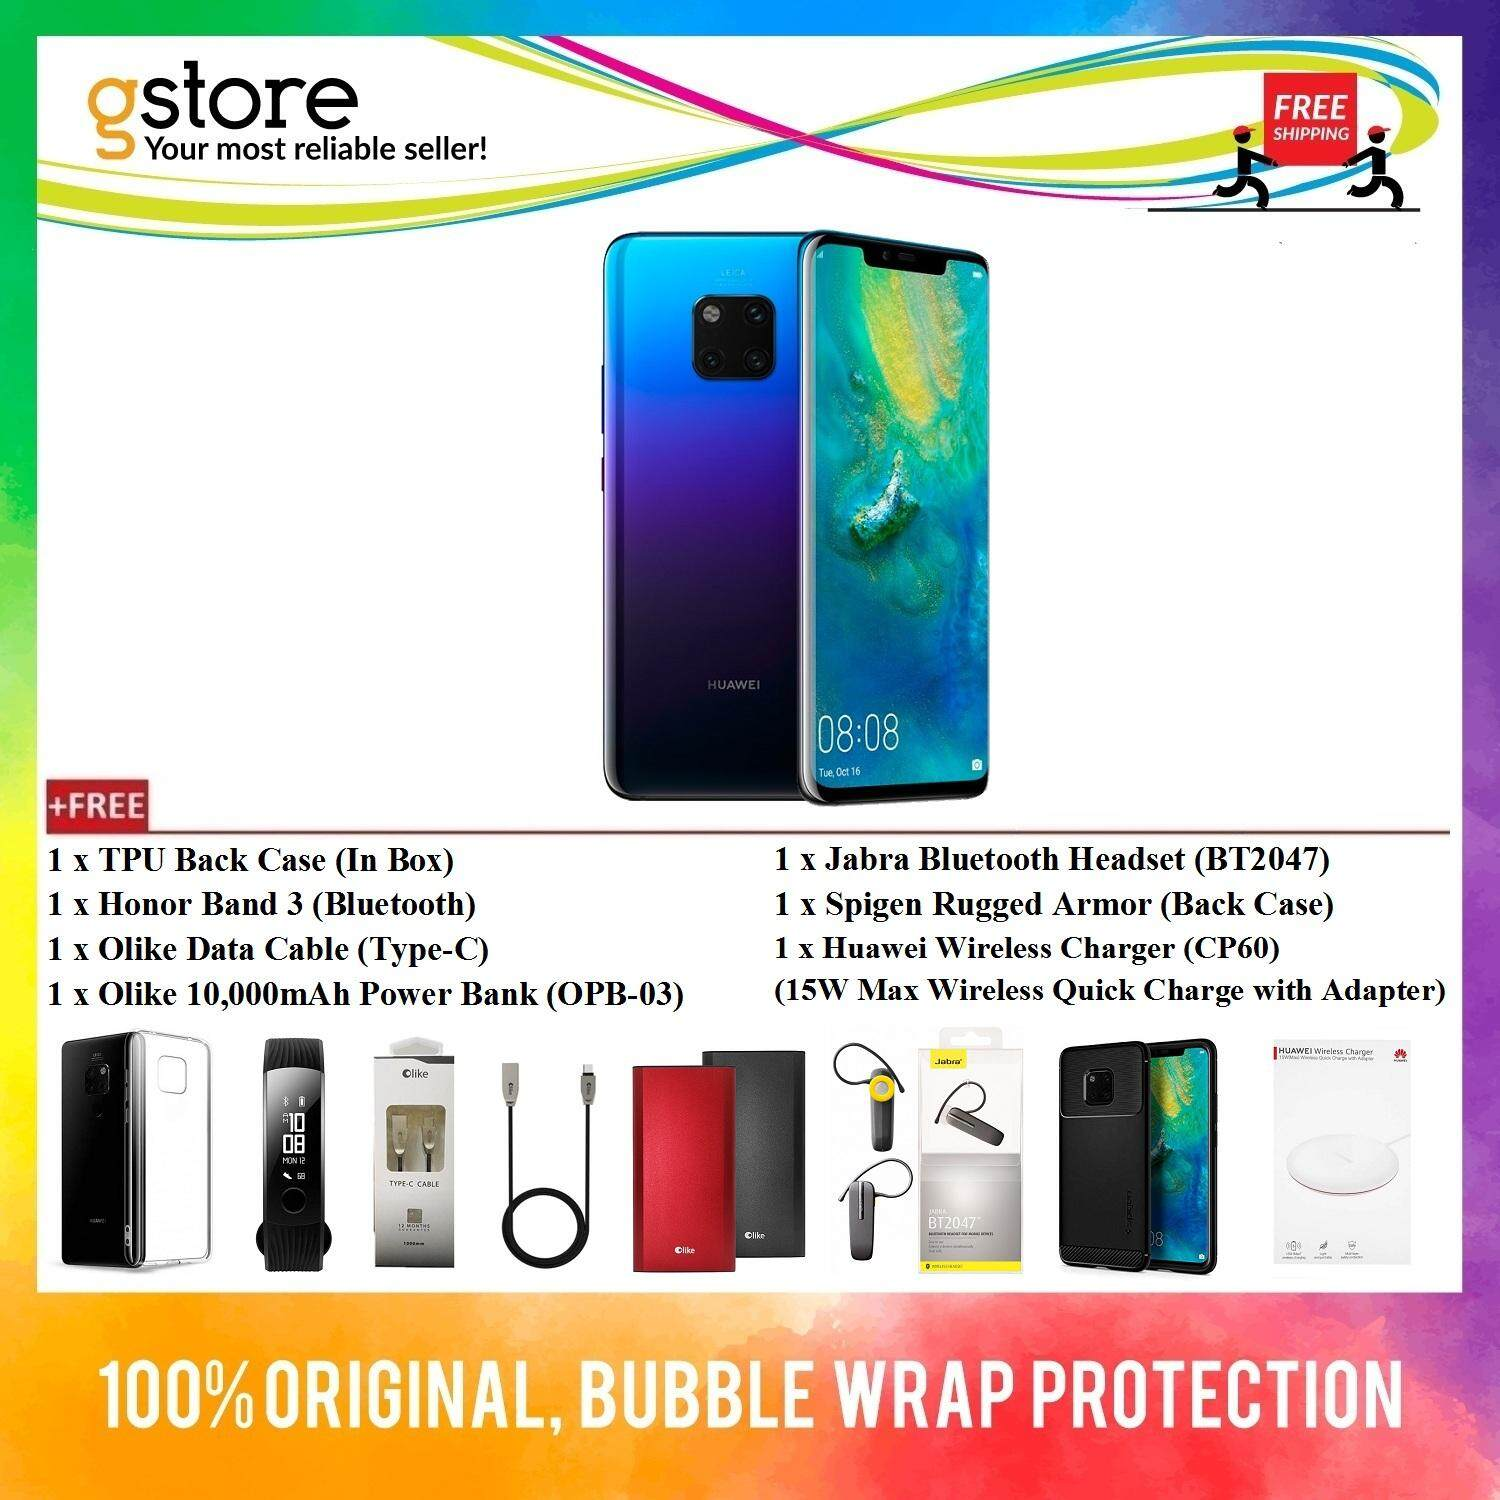 Huawei Mate 20 Pro [128GB ROM+6GB RAM / 256GB ROM+8GB RAM] Original Huawei Malaysia Set + Freebies worth RM699